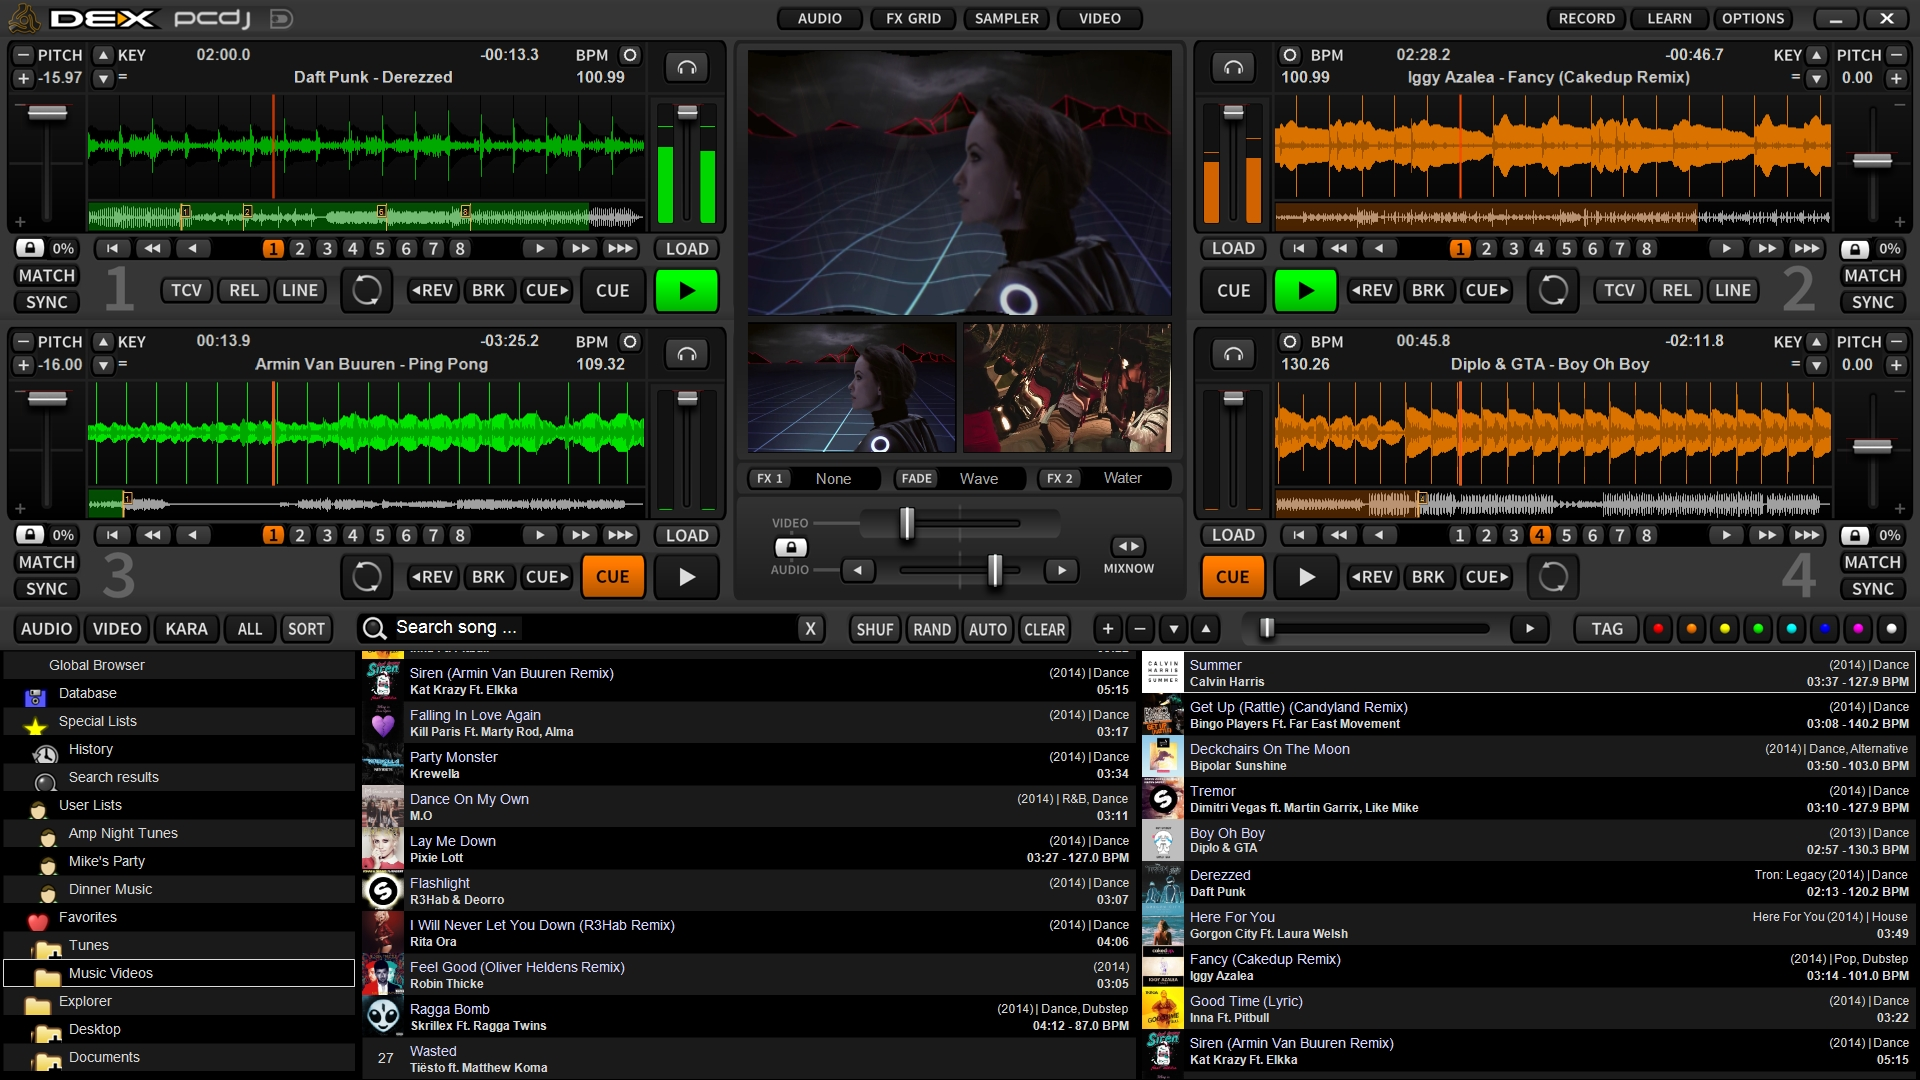 Digital 1 Audio Launches PCDJ DEX 3 DJ Software